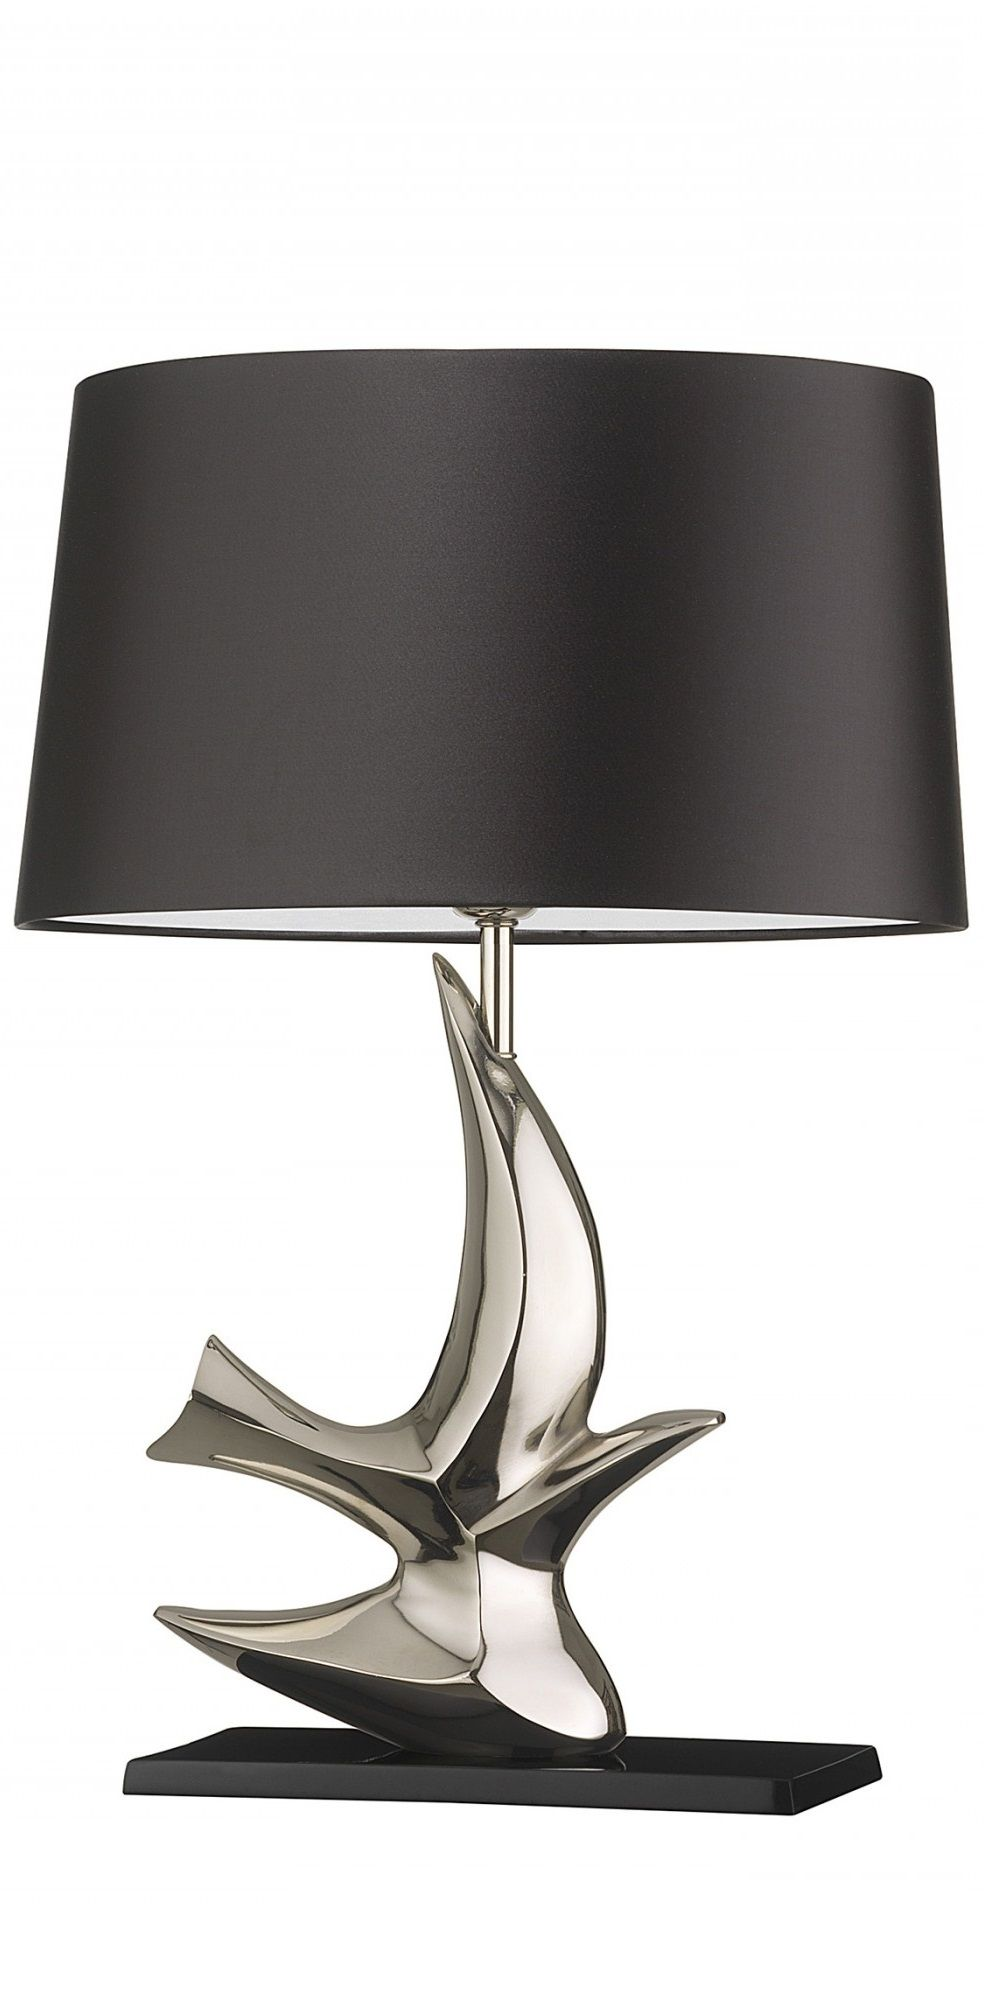 Silver Silver Table Lamp Table Lamps Modern Table Lamps Contemporary Table Lamps Designer T Lamp Inspiration Table Lamps Living Room Beautiful Table Lamp Designer table lamps living room